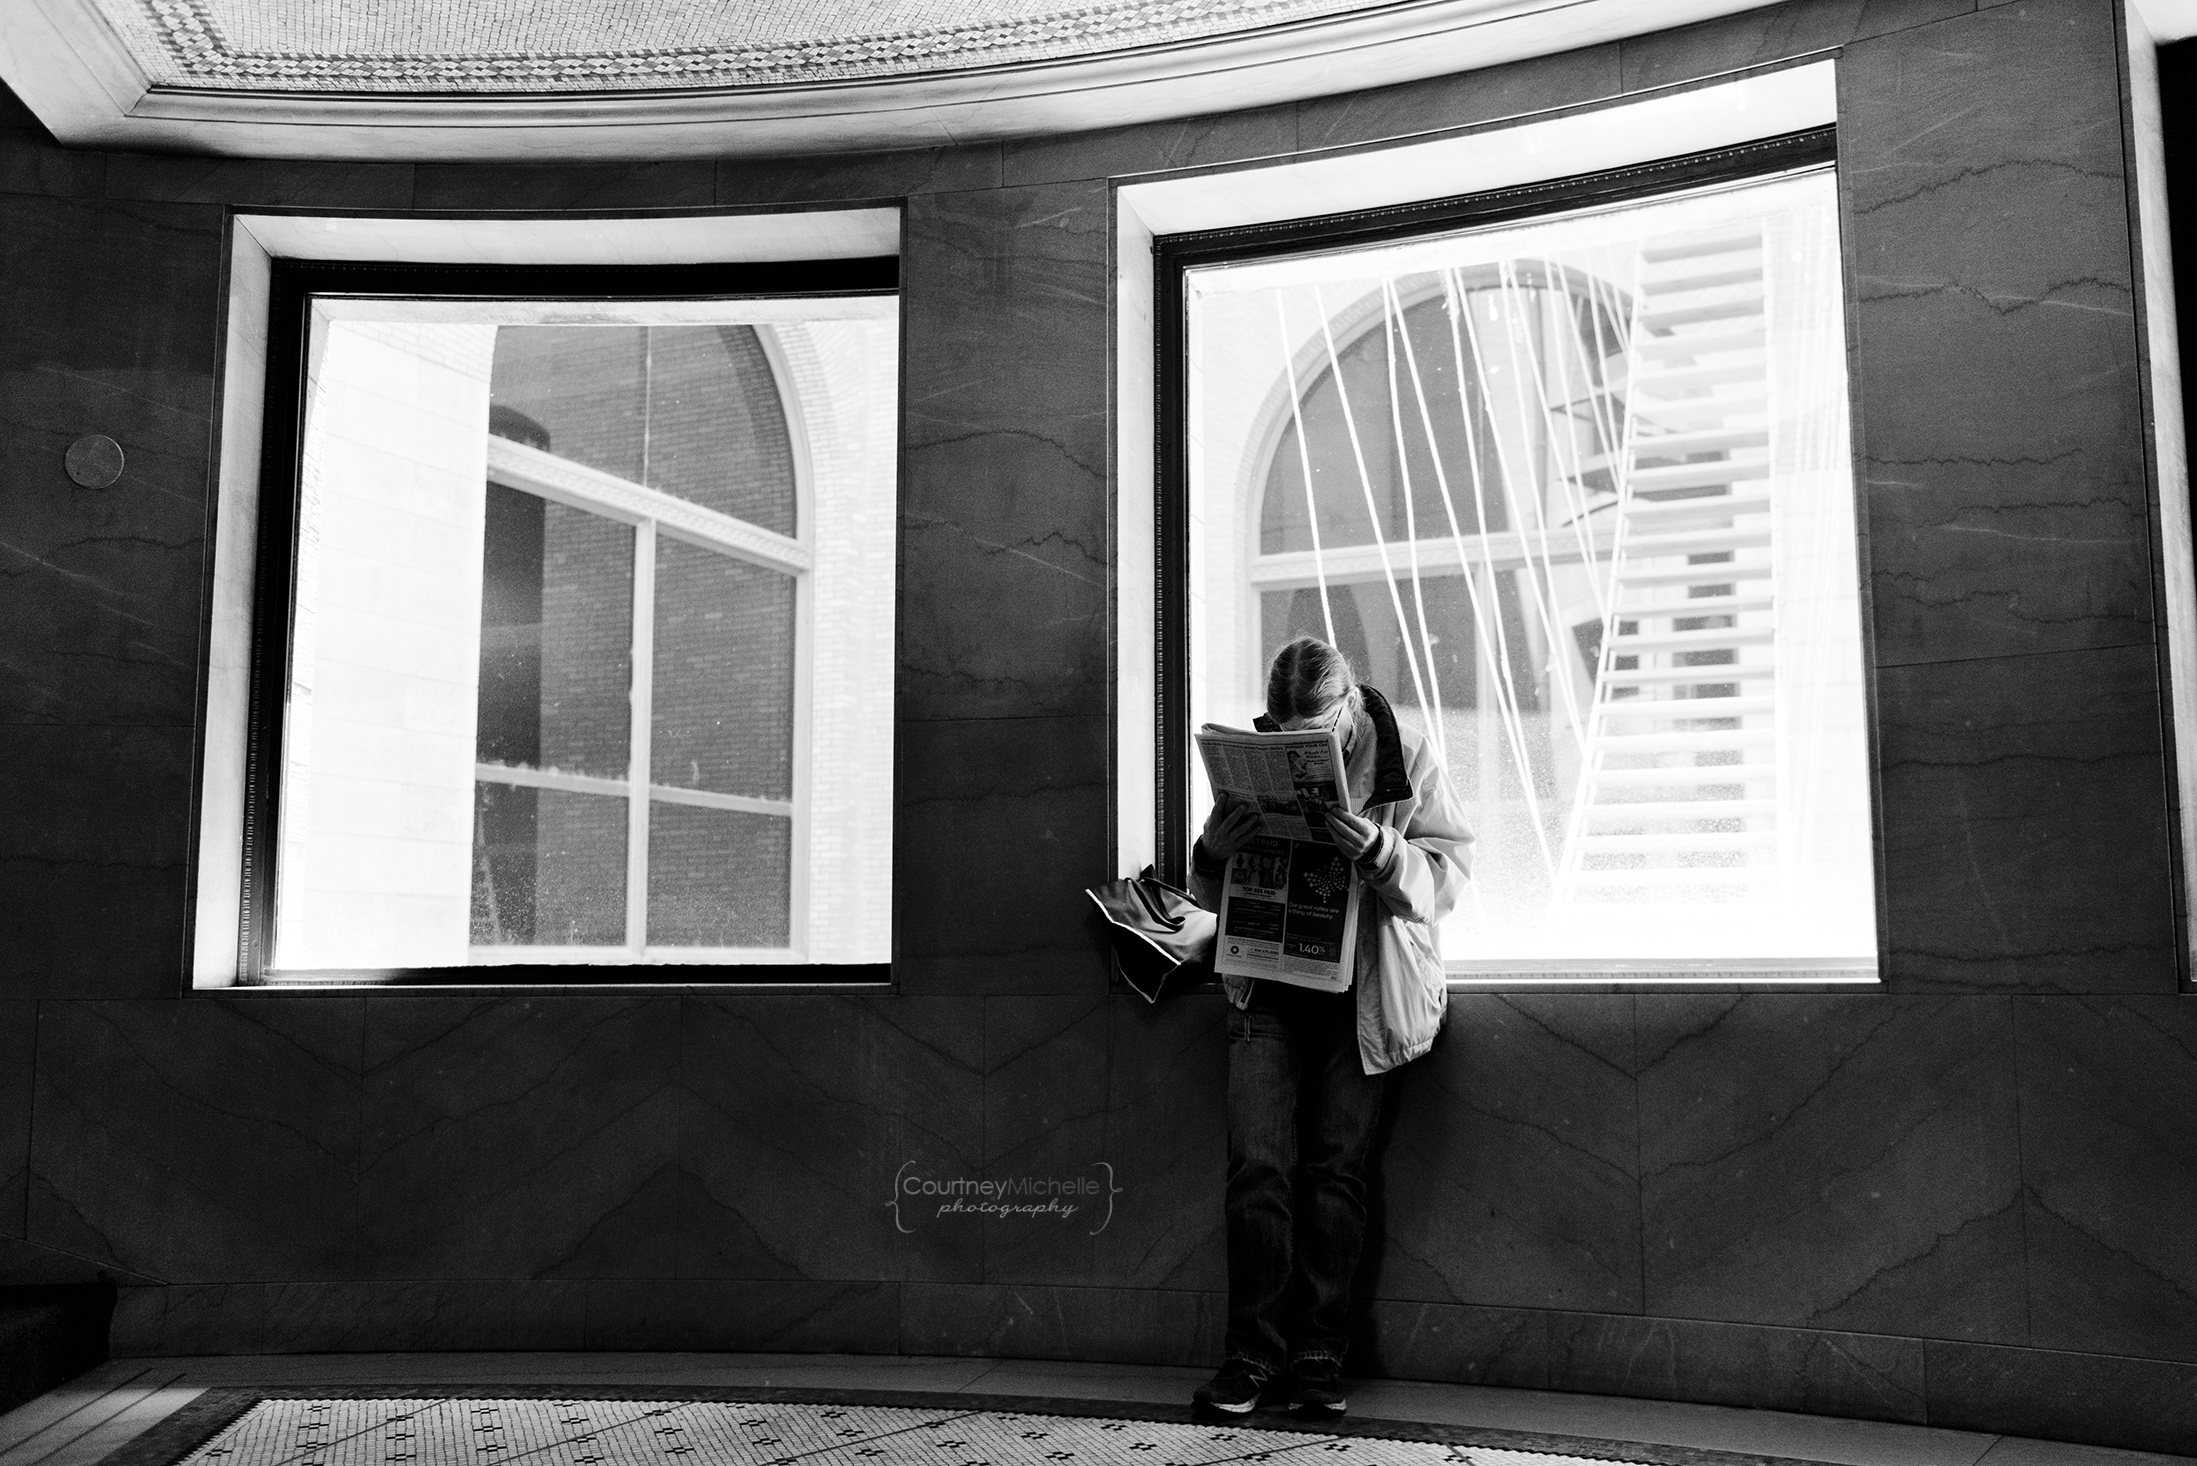 chicago_cultural_center_chicago_street_photography_courtney_laper_photography.jpg